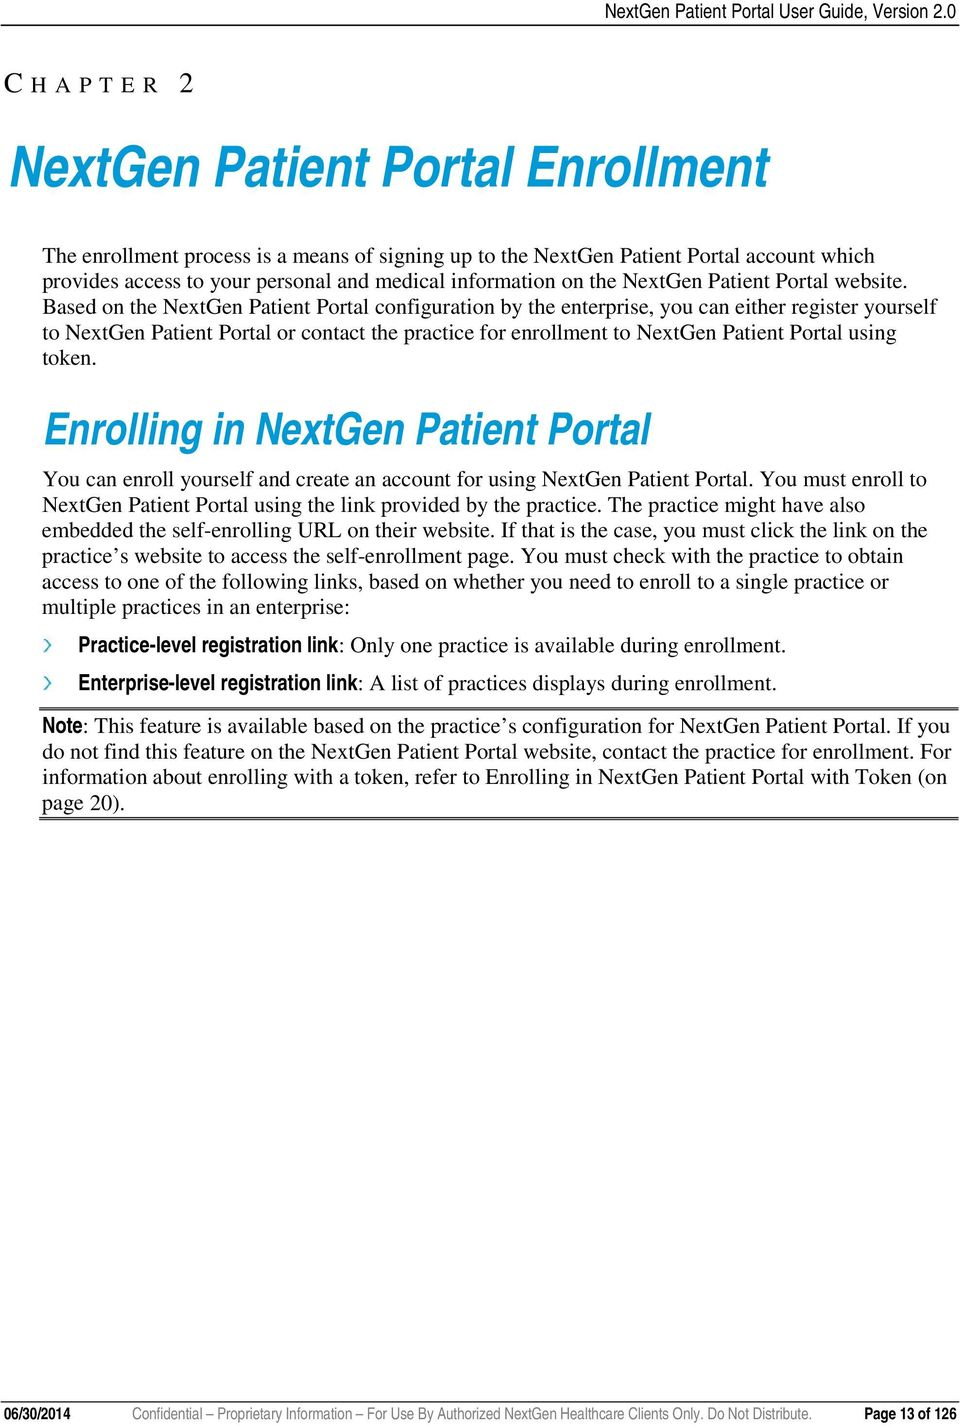 the NextGen Patient Portal website.